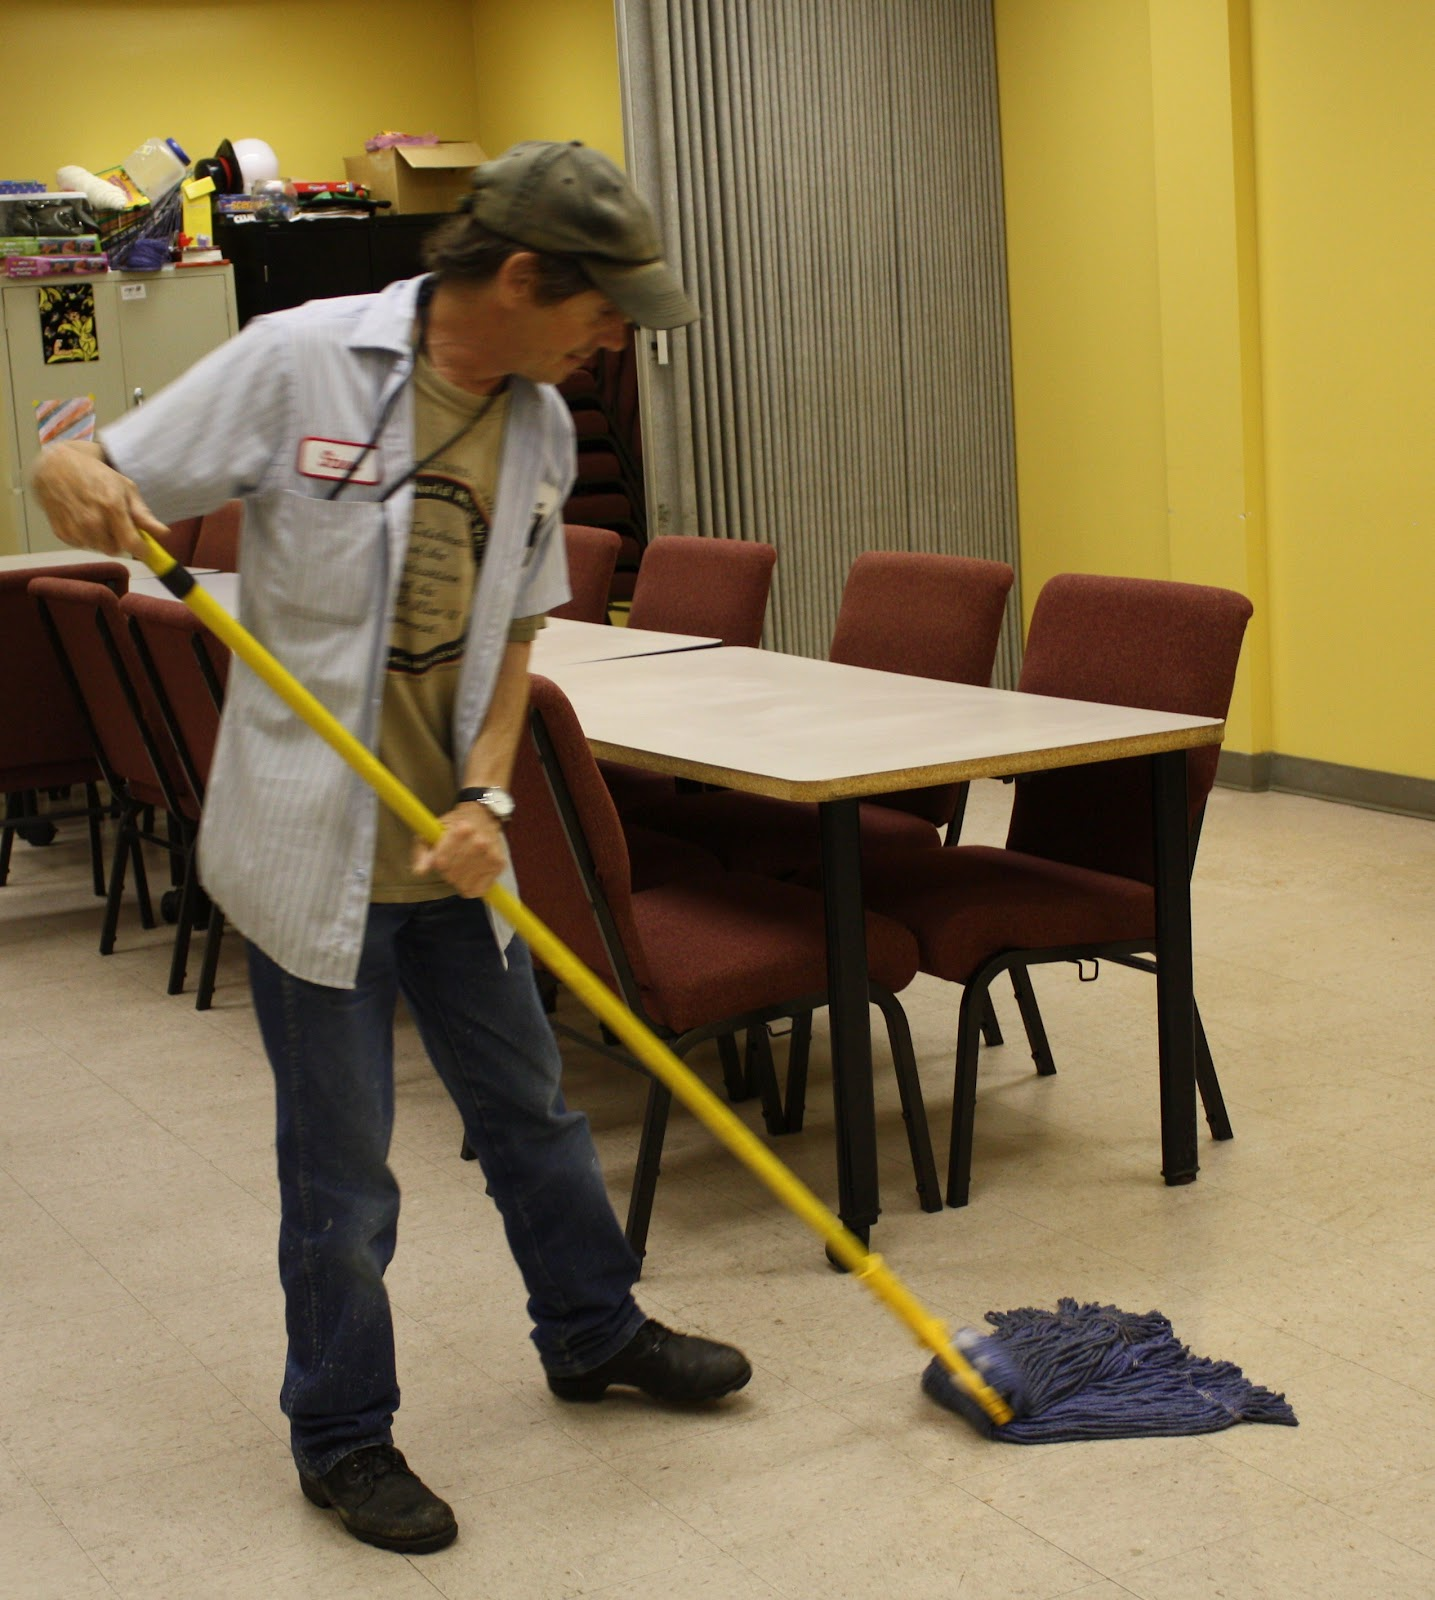 custodian reaches goals one day at a time